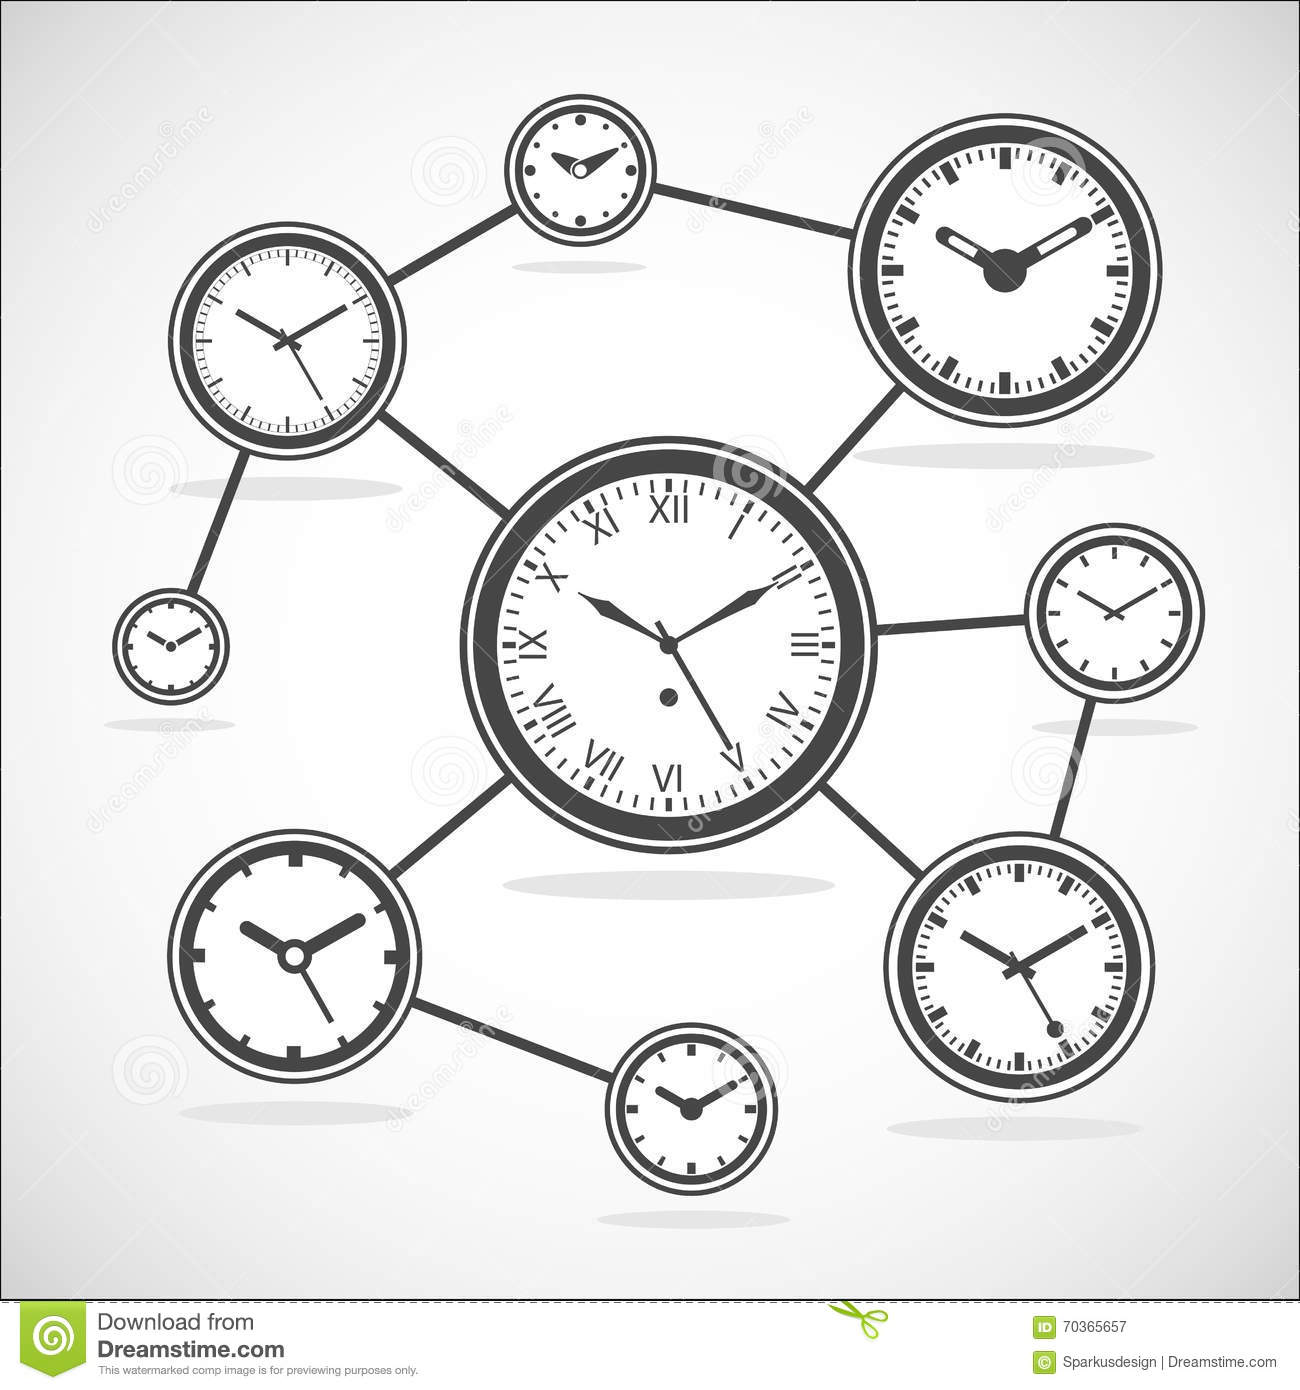 Time Synchronization Diagram